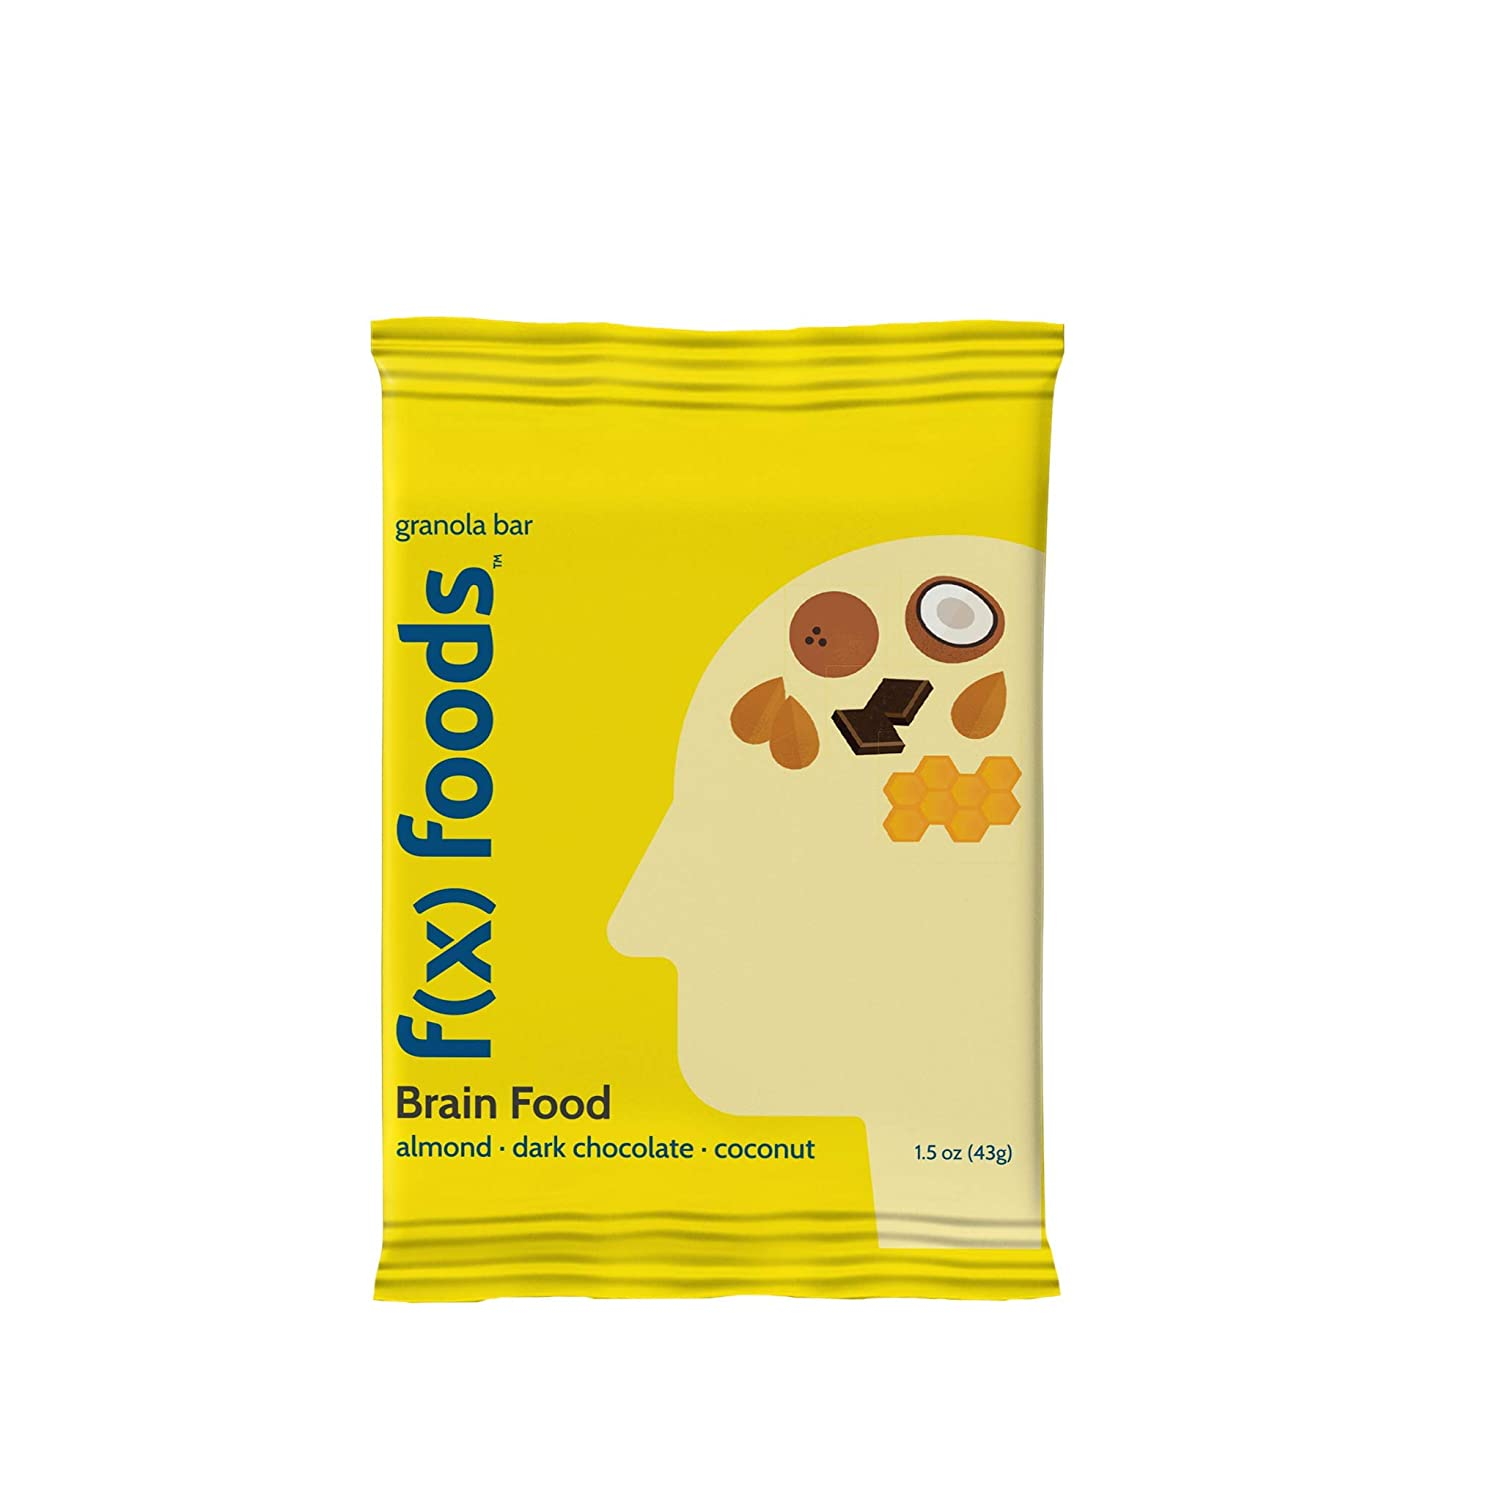 f(x) foods - Function Foods - Brain Food Bar - Granola Bar - Gluten Free - 11 Wholesome Ingredients - No Artificial Preservatives, Sweeteners or Dyes - (1.5 oz, 18 pack) (18)